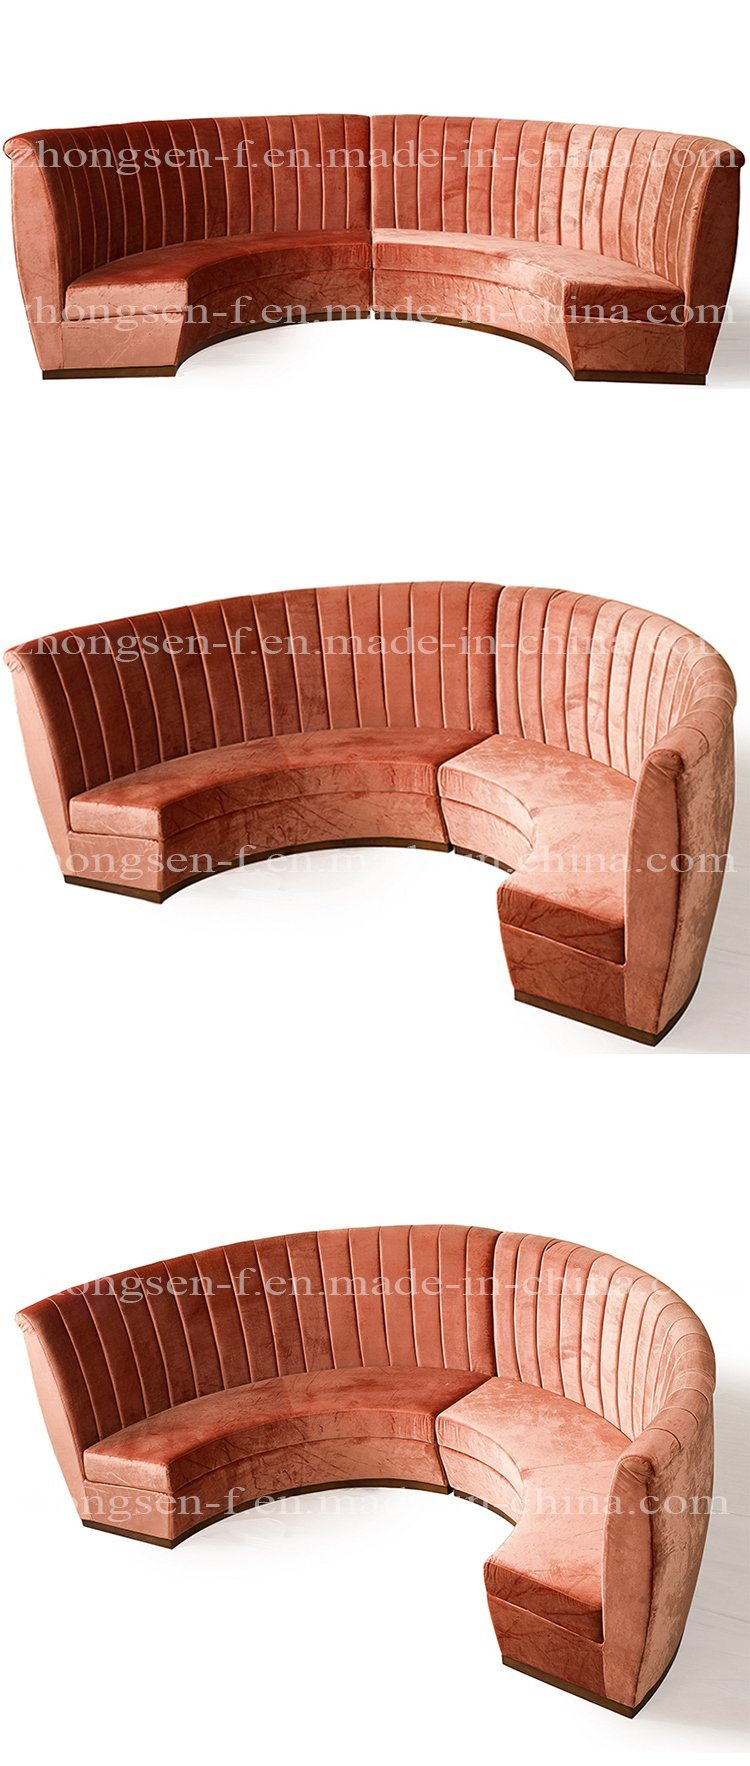 Modern Style Chinese Furniture Leather Living Room Sofa Sectional Sofa